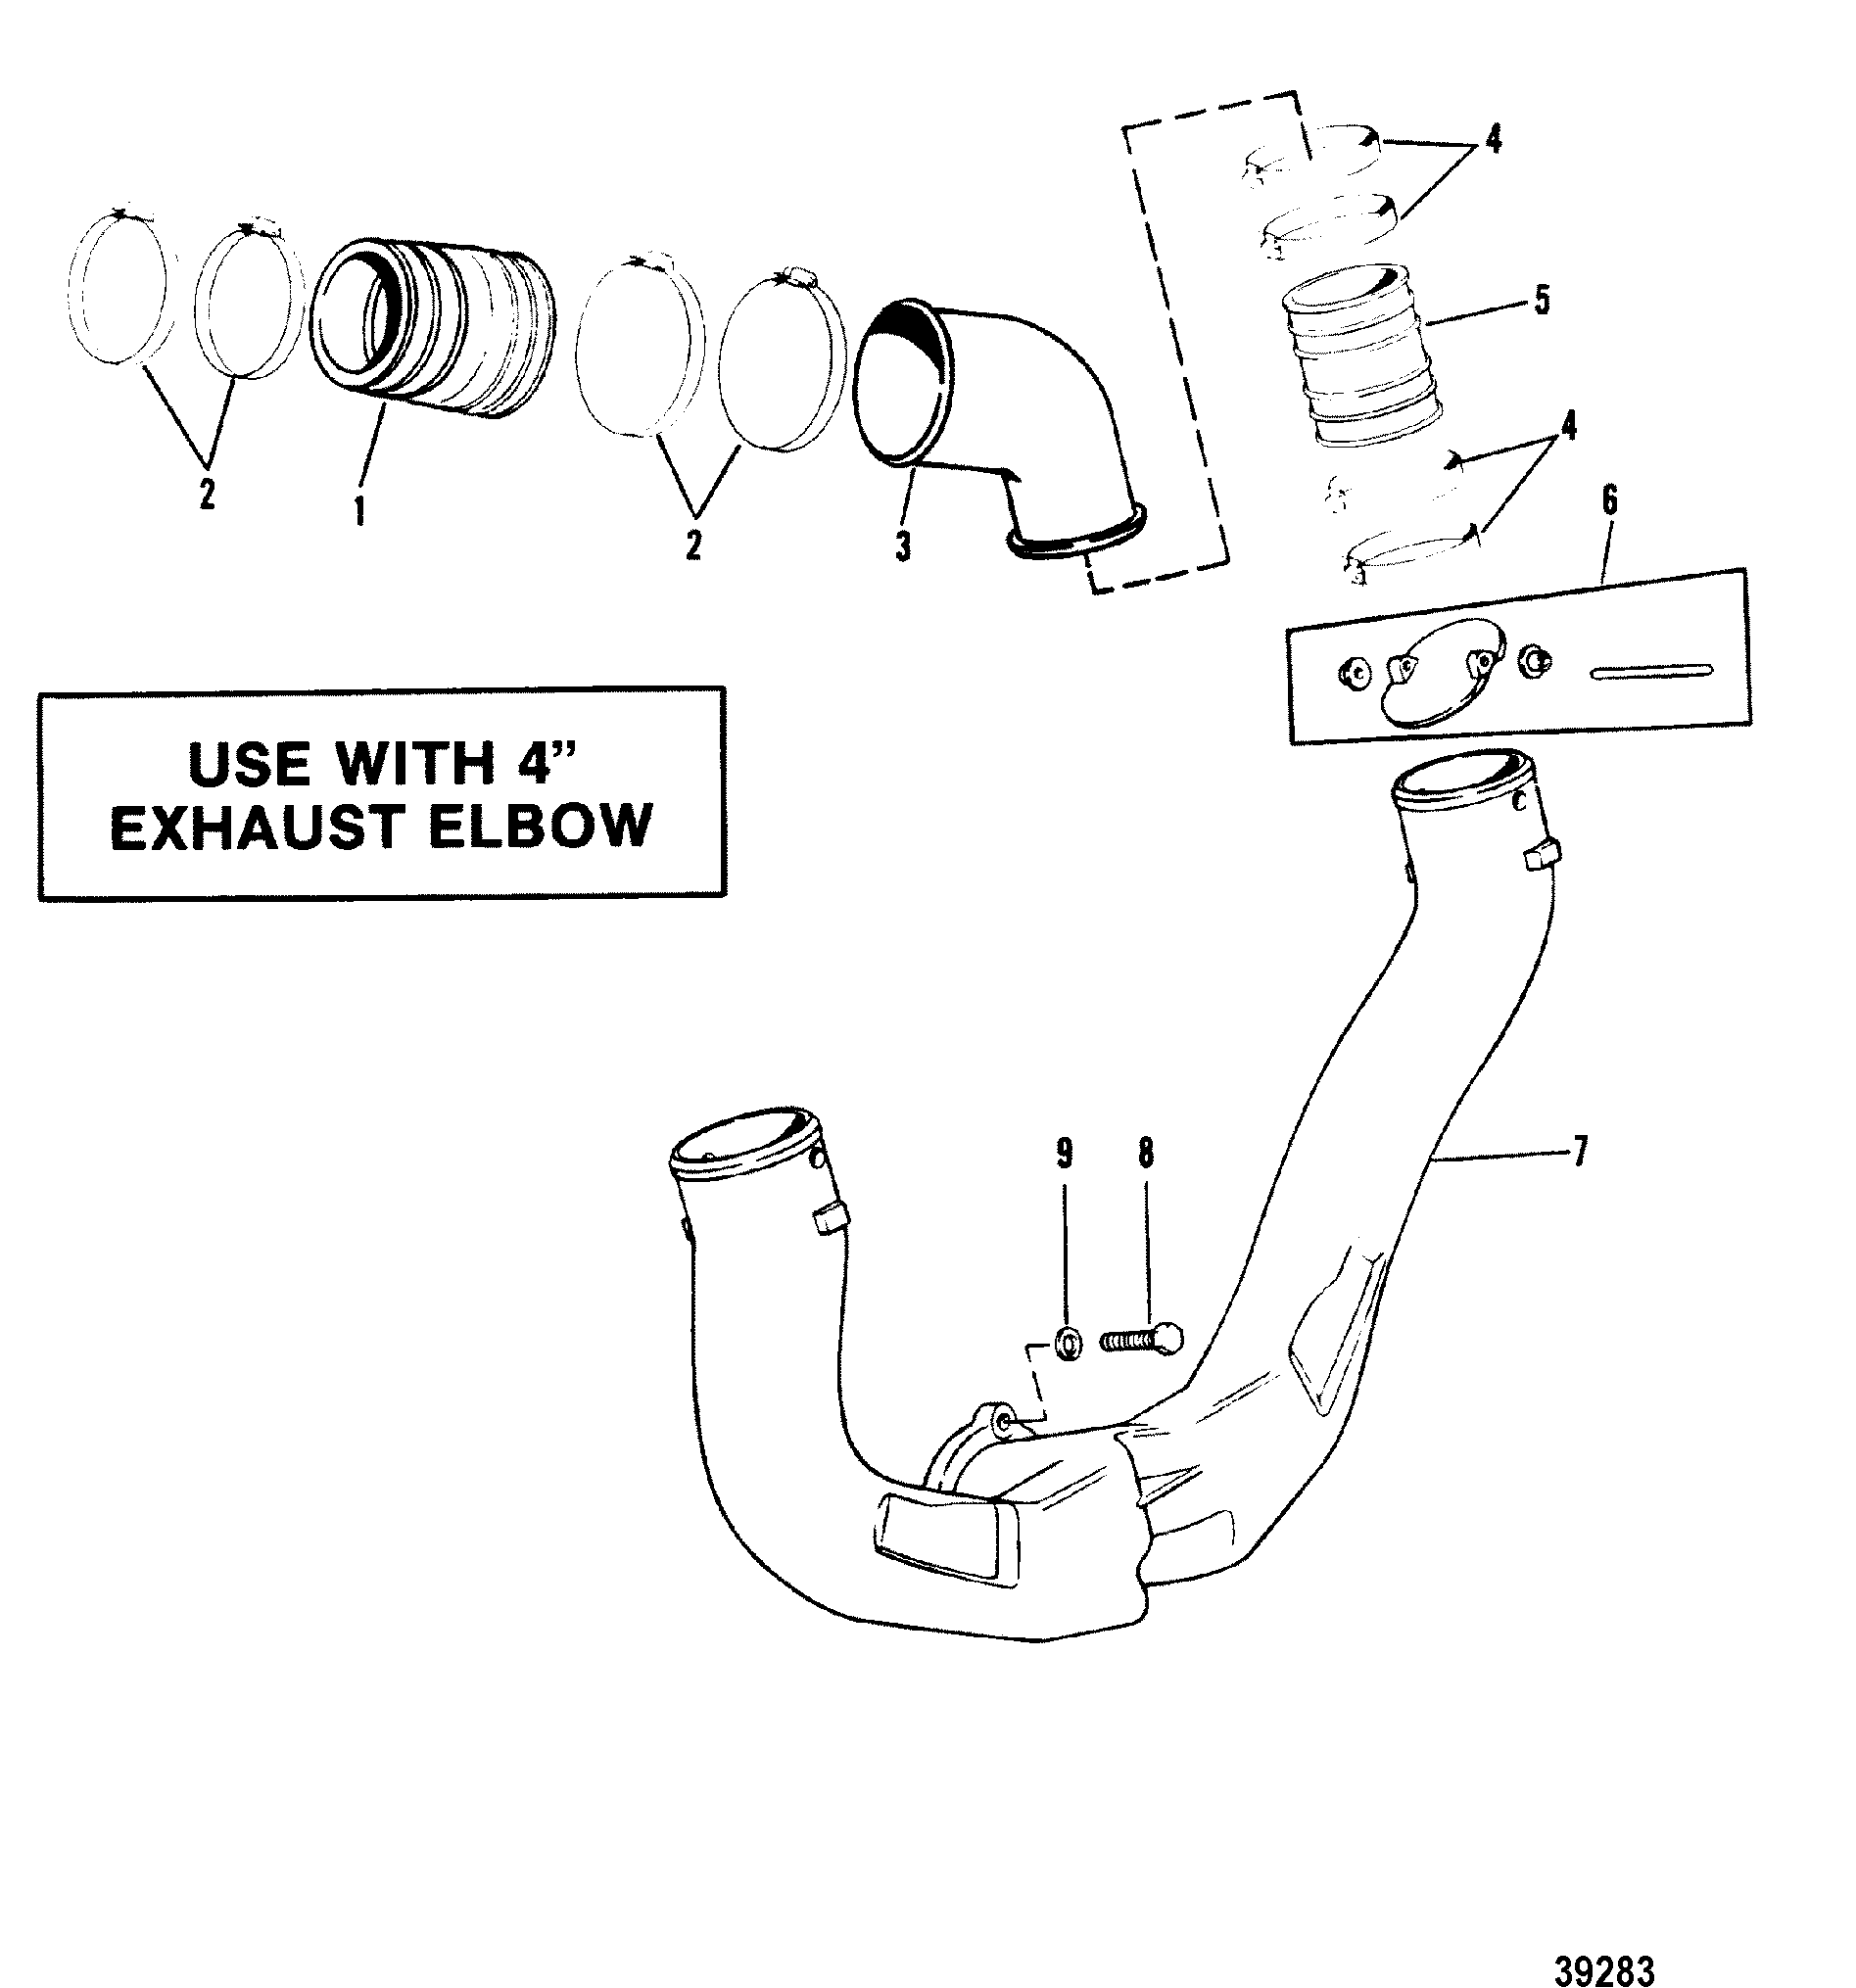 Mercruiser 200 2 Bbl Gm 305 V 81 1985 1978 898 Wiring Diagram Exhaust System Use With 7 Degree Elbow